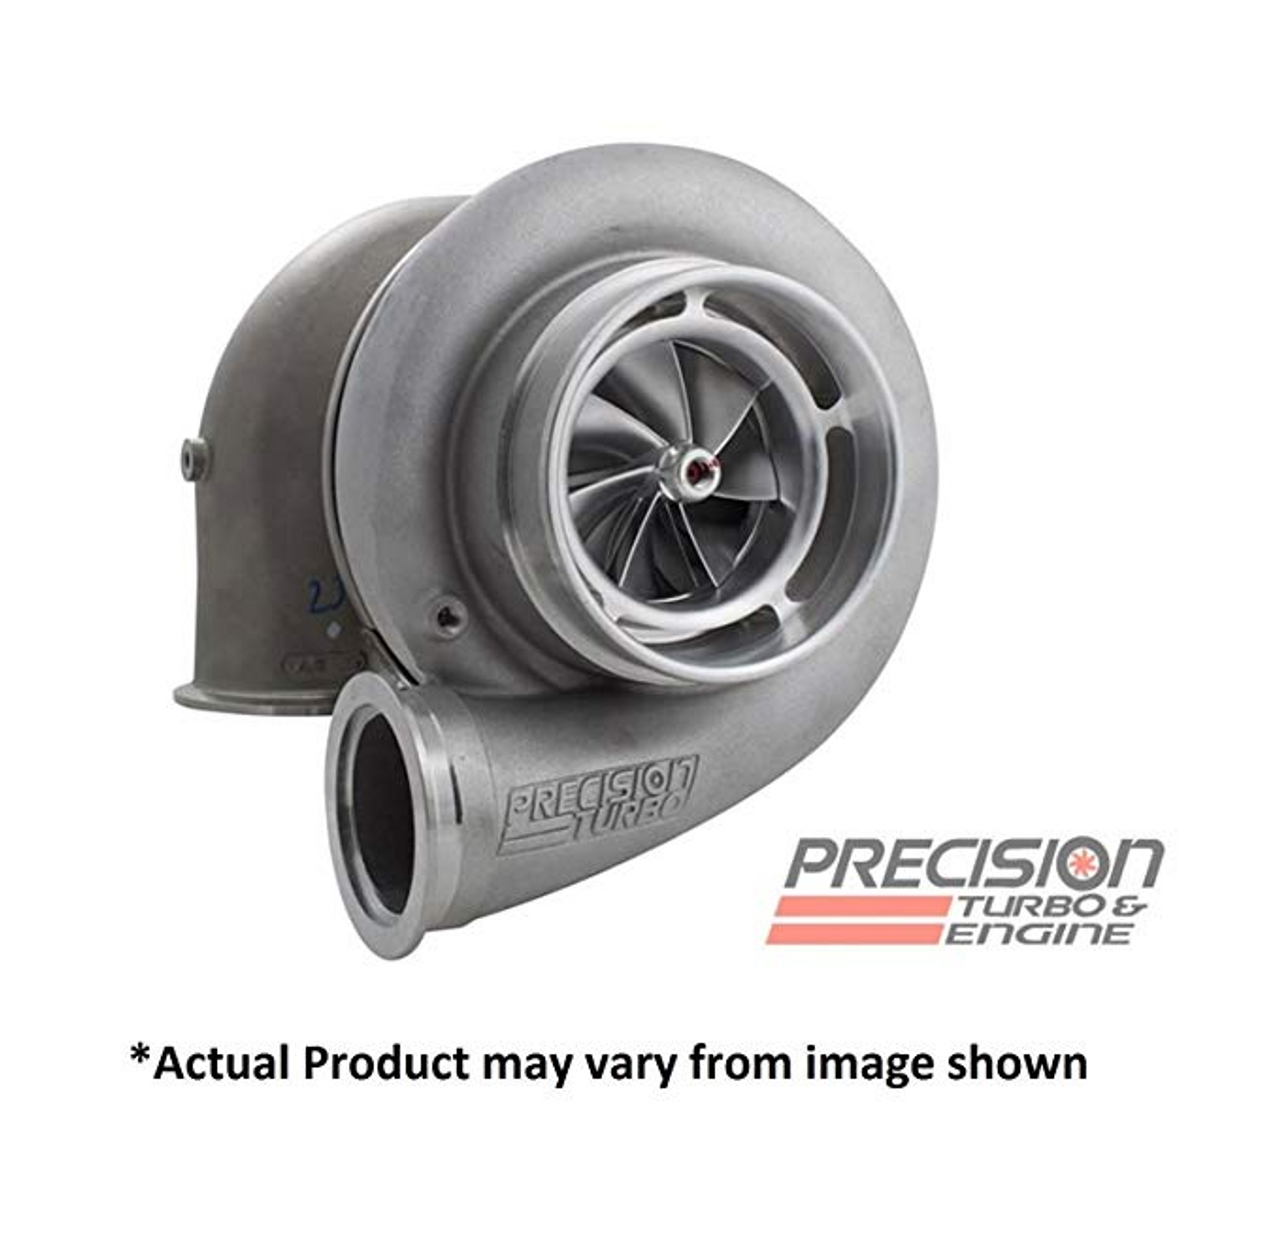 Precision Turbo LS-Series PT7675 Turbocharger .96 A//R T4 Undivided 1150HP H Cover